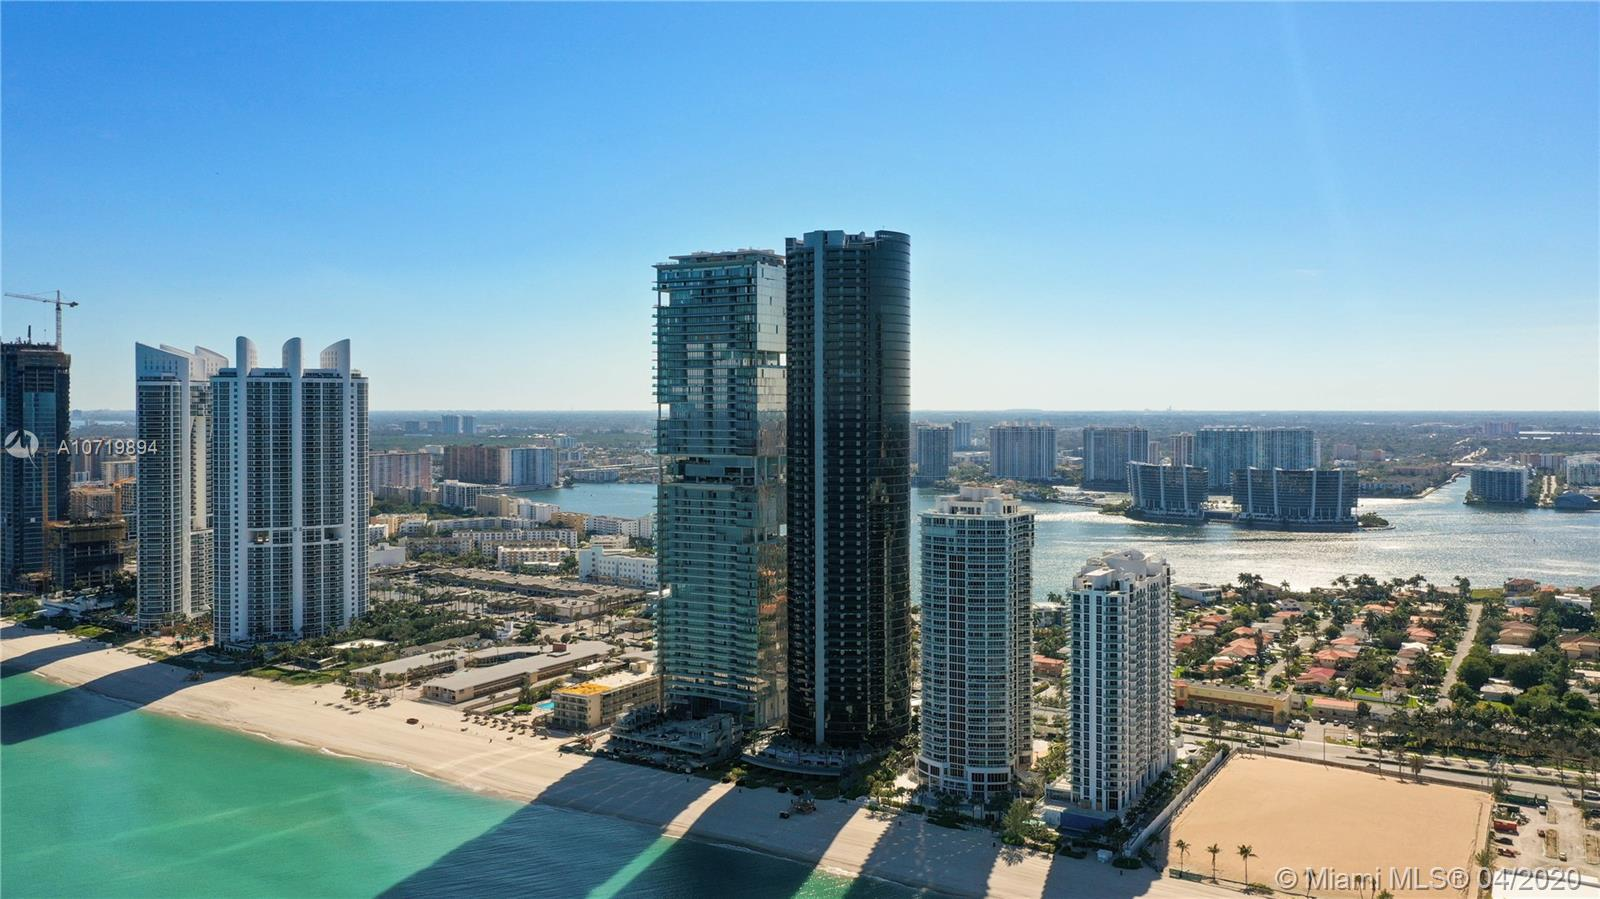 18555 Collins Ave, Unit #4005 Luxury Real Estate